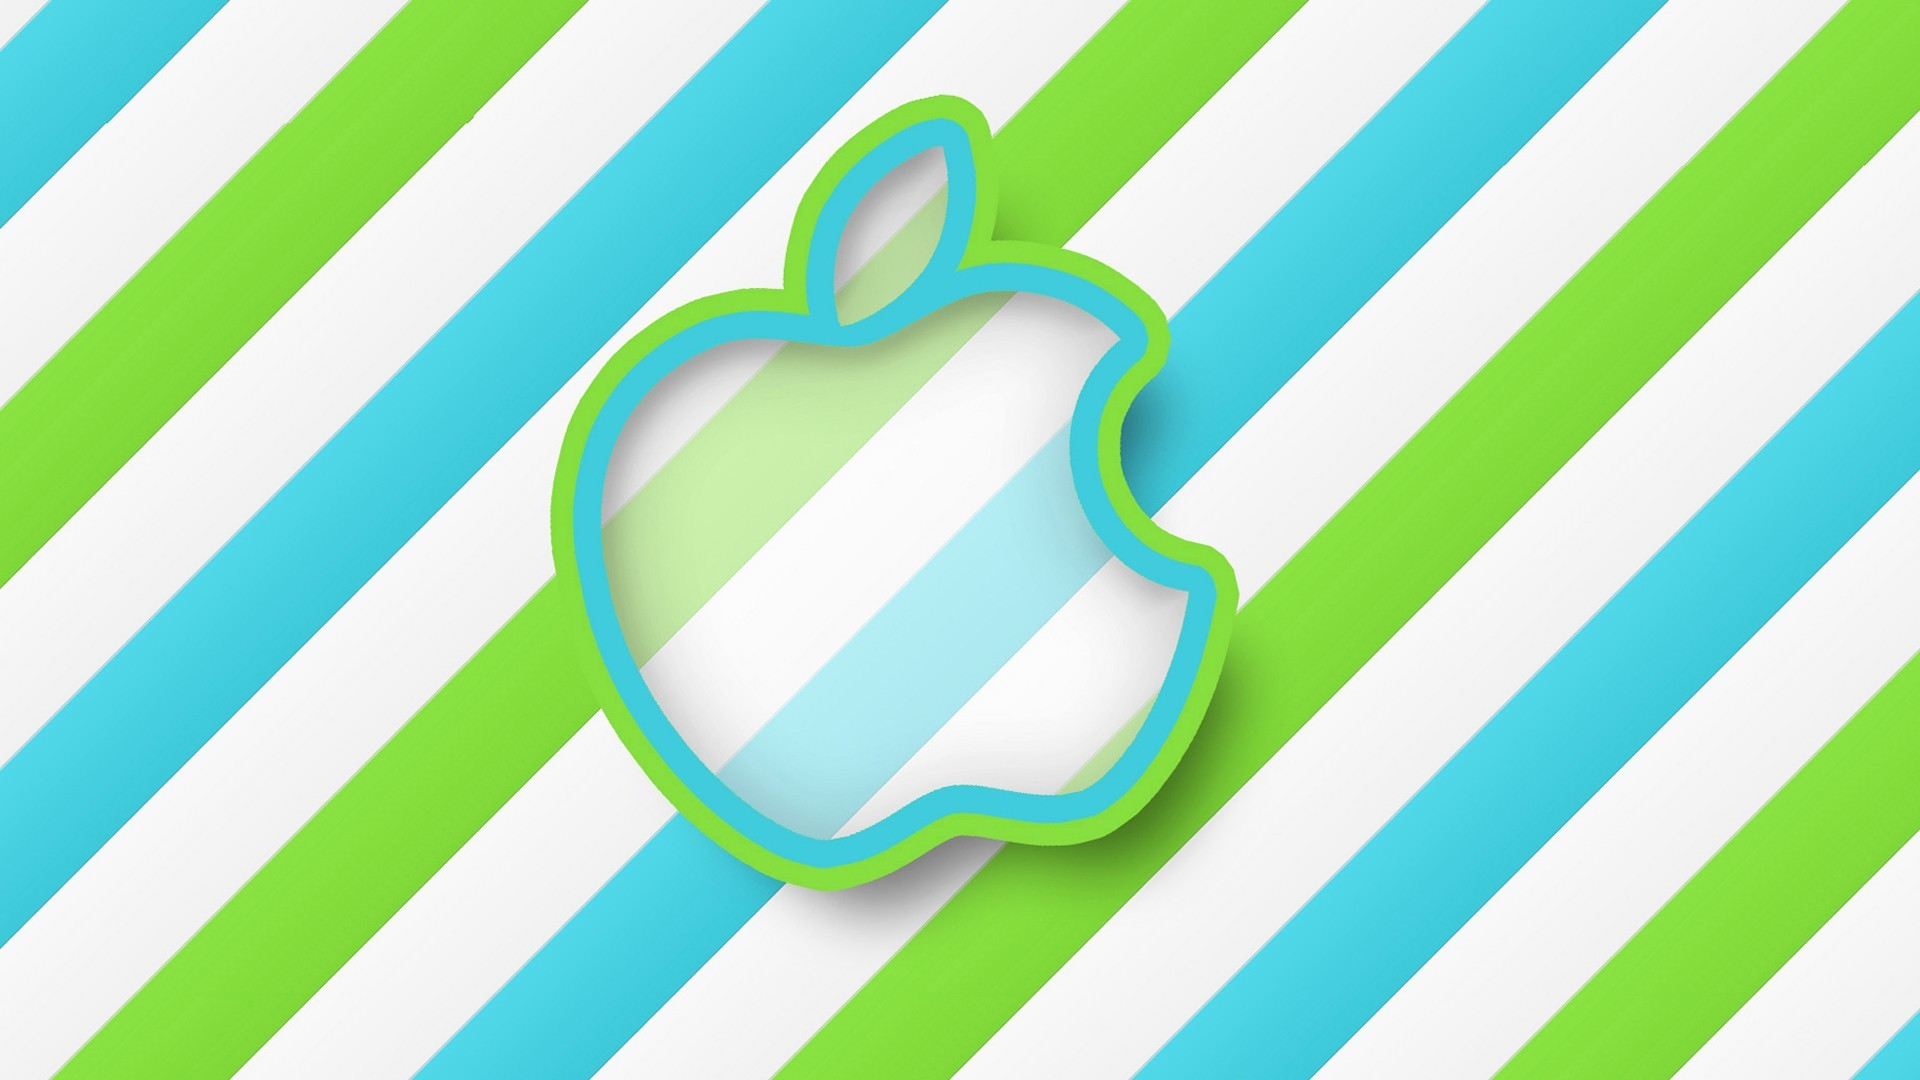 apple inc HD Wallpaper